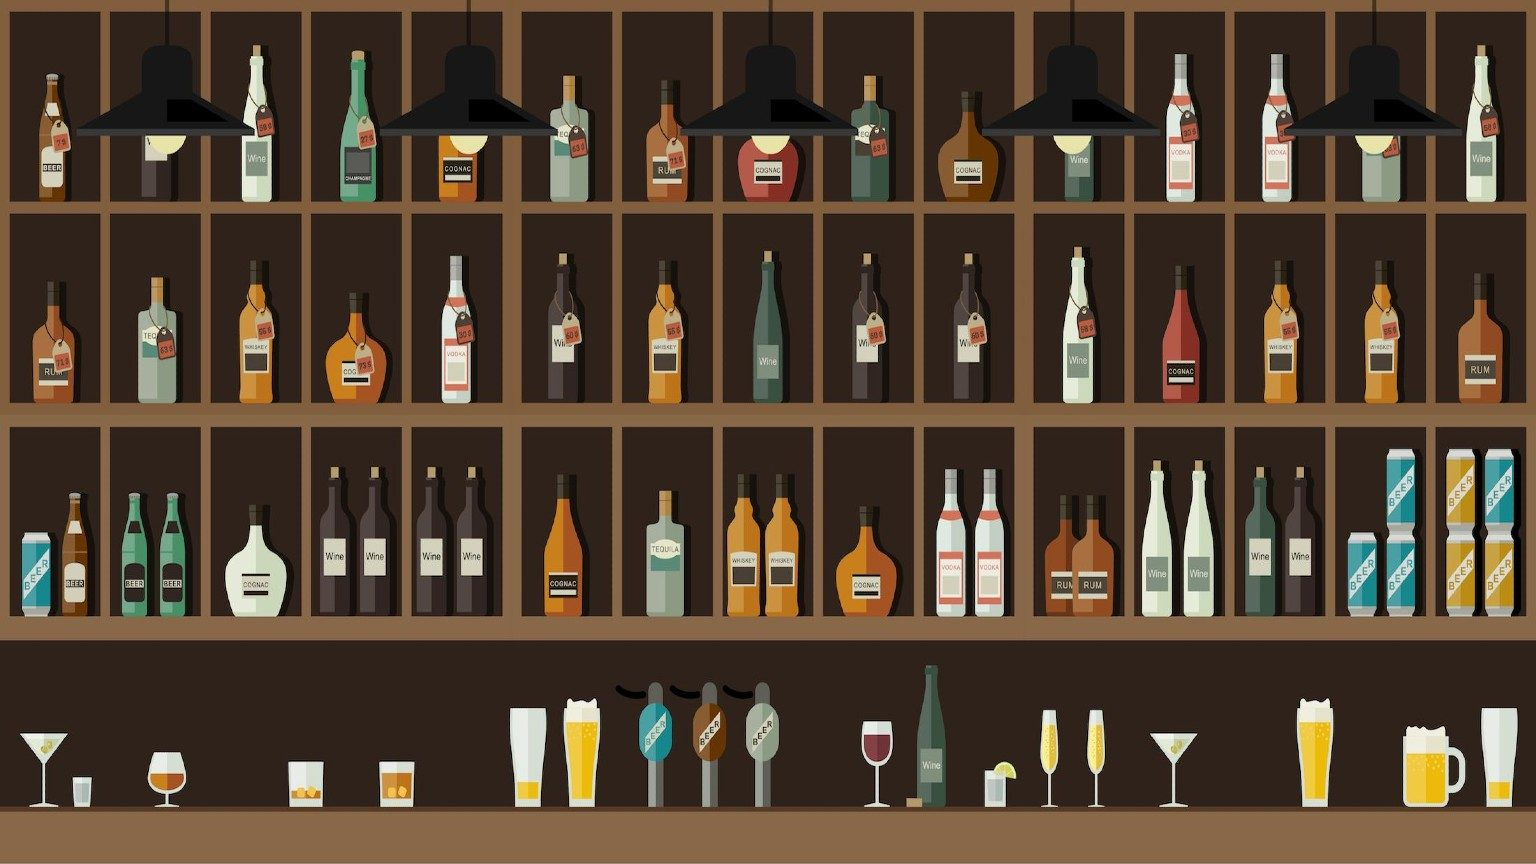 Shelf with bottle icons